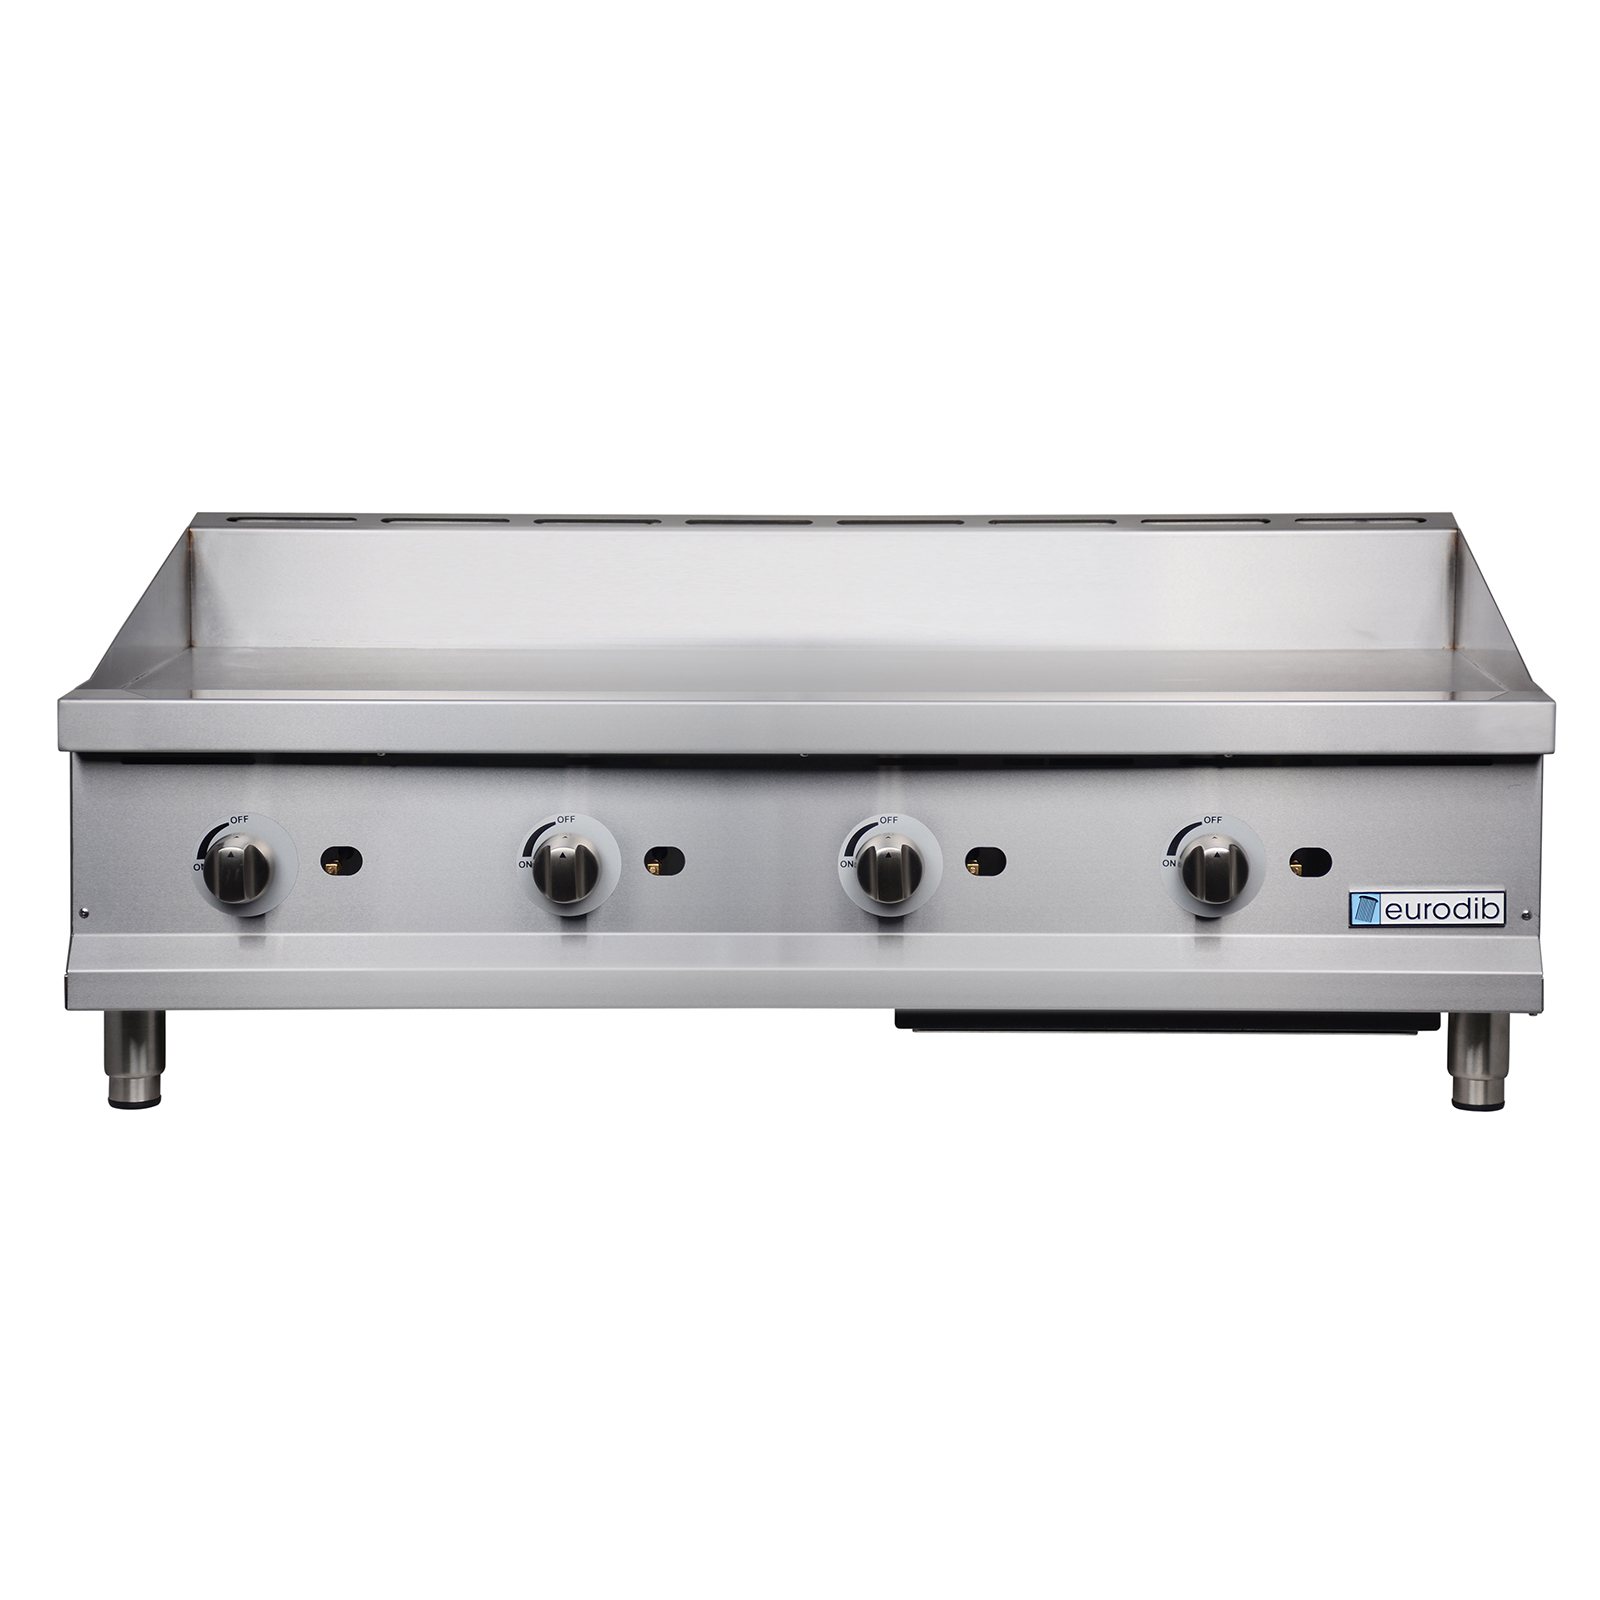 Eurodib USA T-G48 griddle, gas, countertop